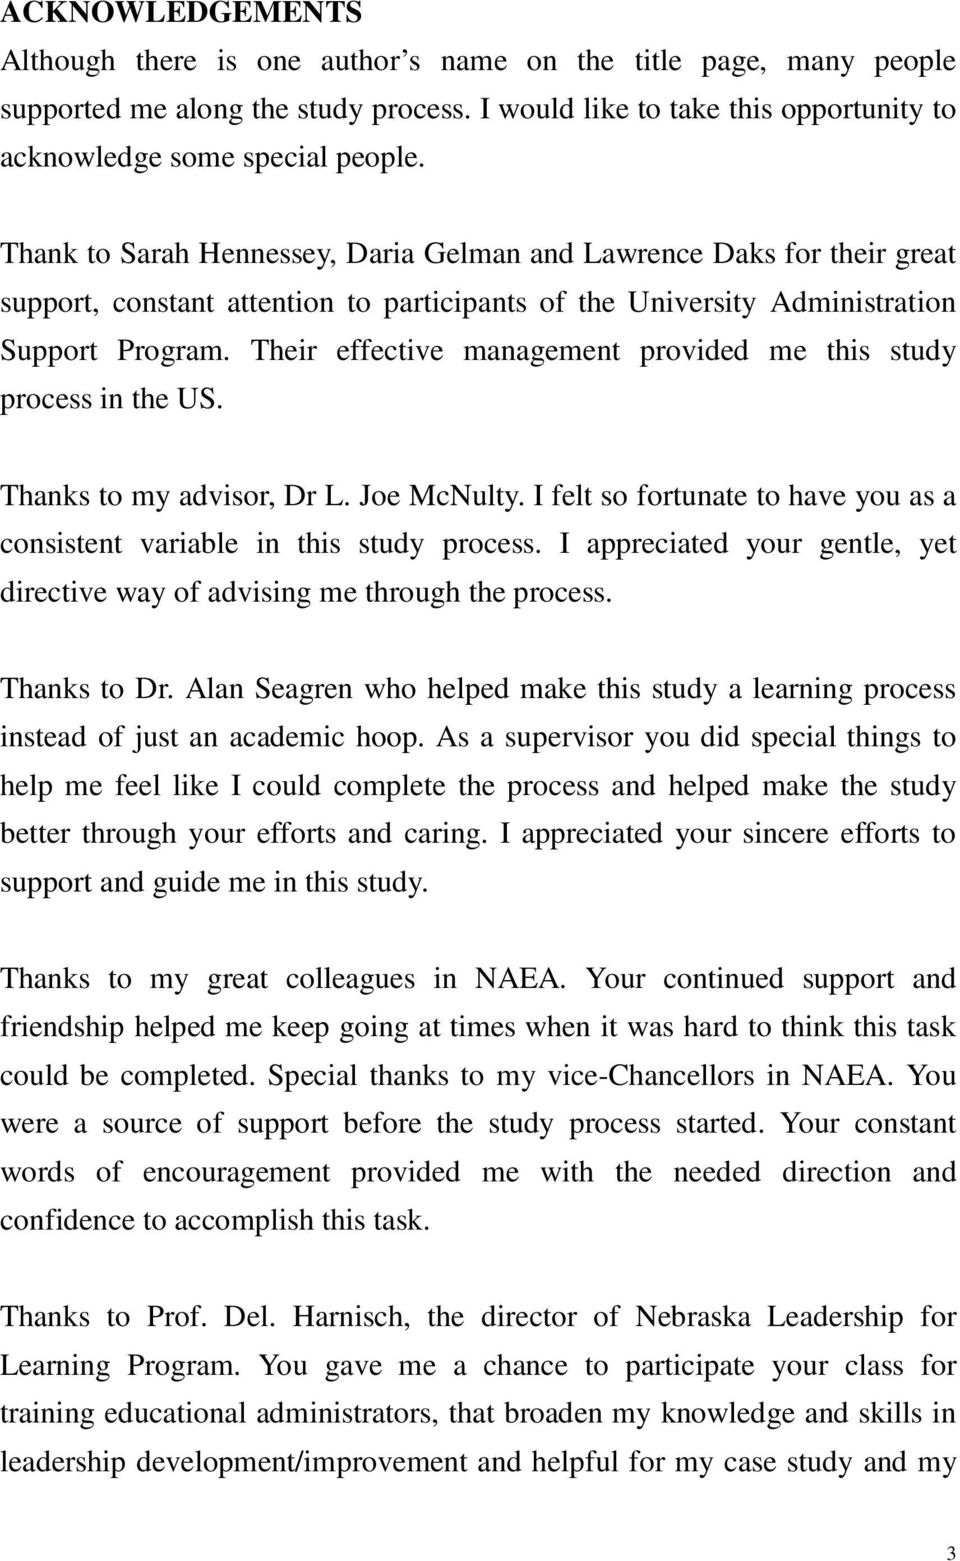 Their effective management provided me this study process in the US. Thanks to my advisor, Dr L. Joe McNulty. I felt so fortunate to have you as a consistent variable in this study process.